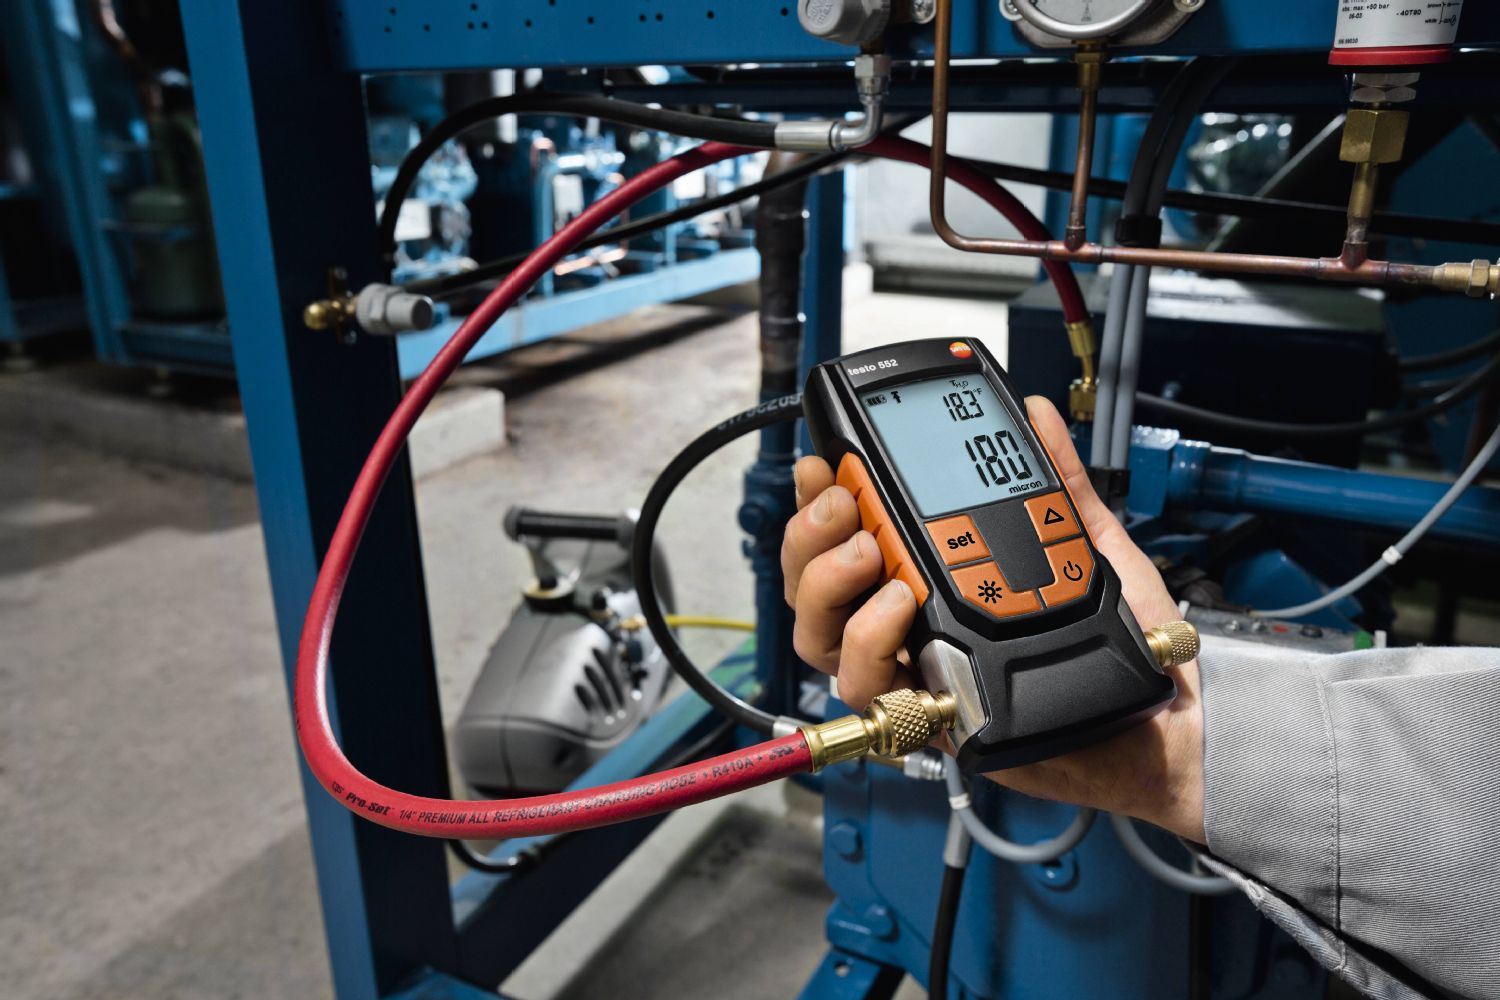 The testo 552 is one of key tools used to assist training in South Metropolitan.